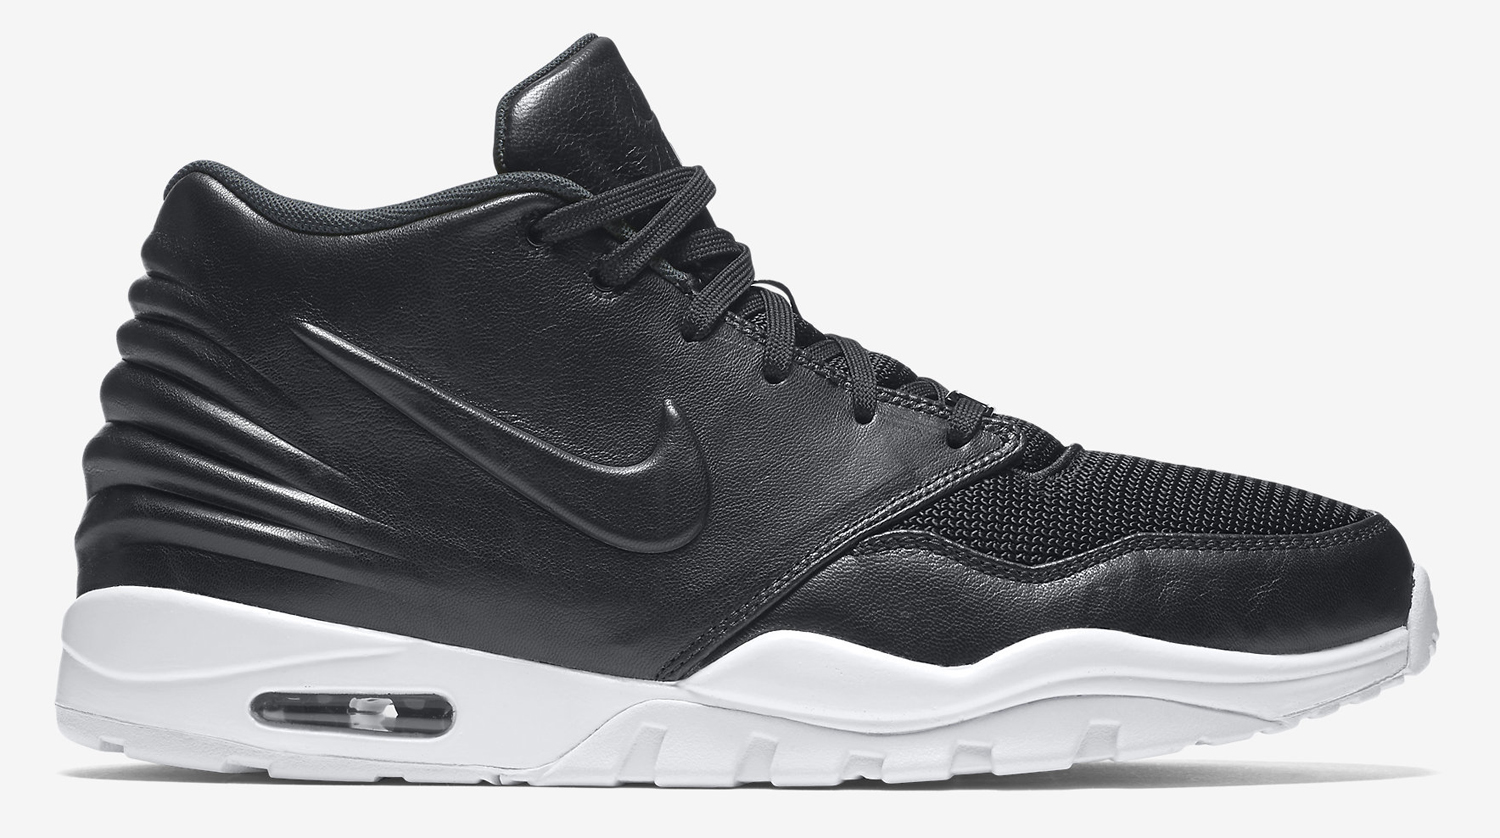 ee0fb3c65e096 The black Nike Air Entertrainer is available now via Oneness – no sign of  the red pair just yet.